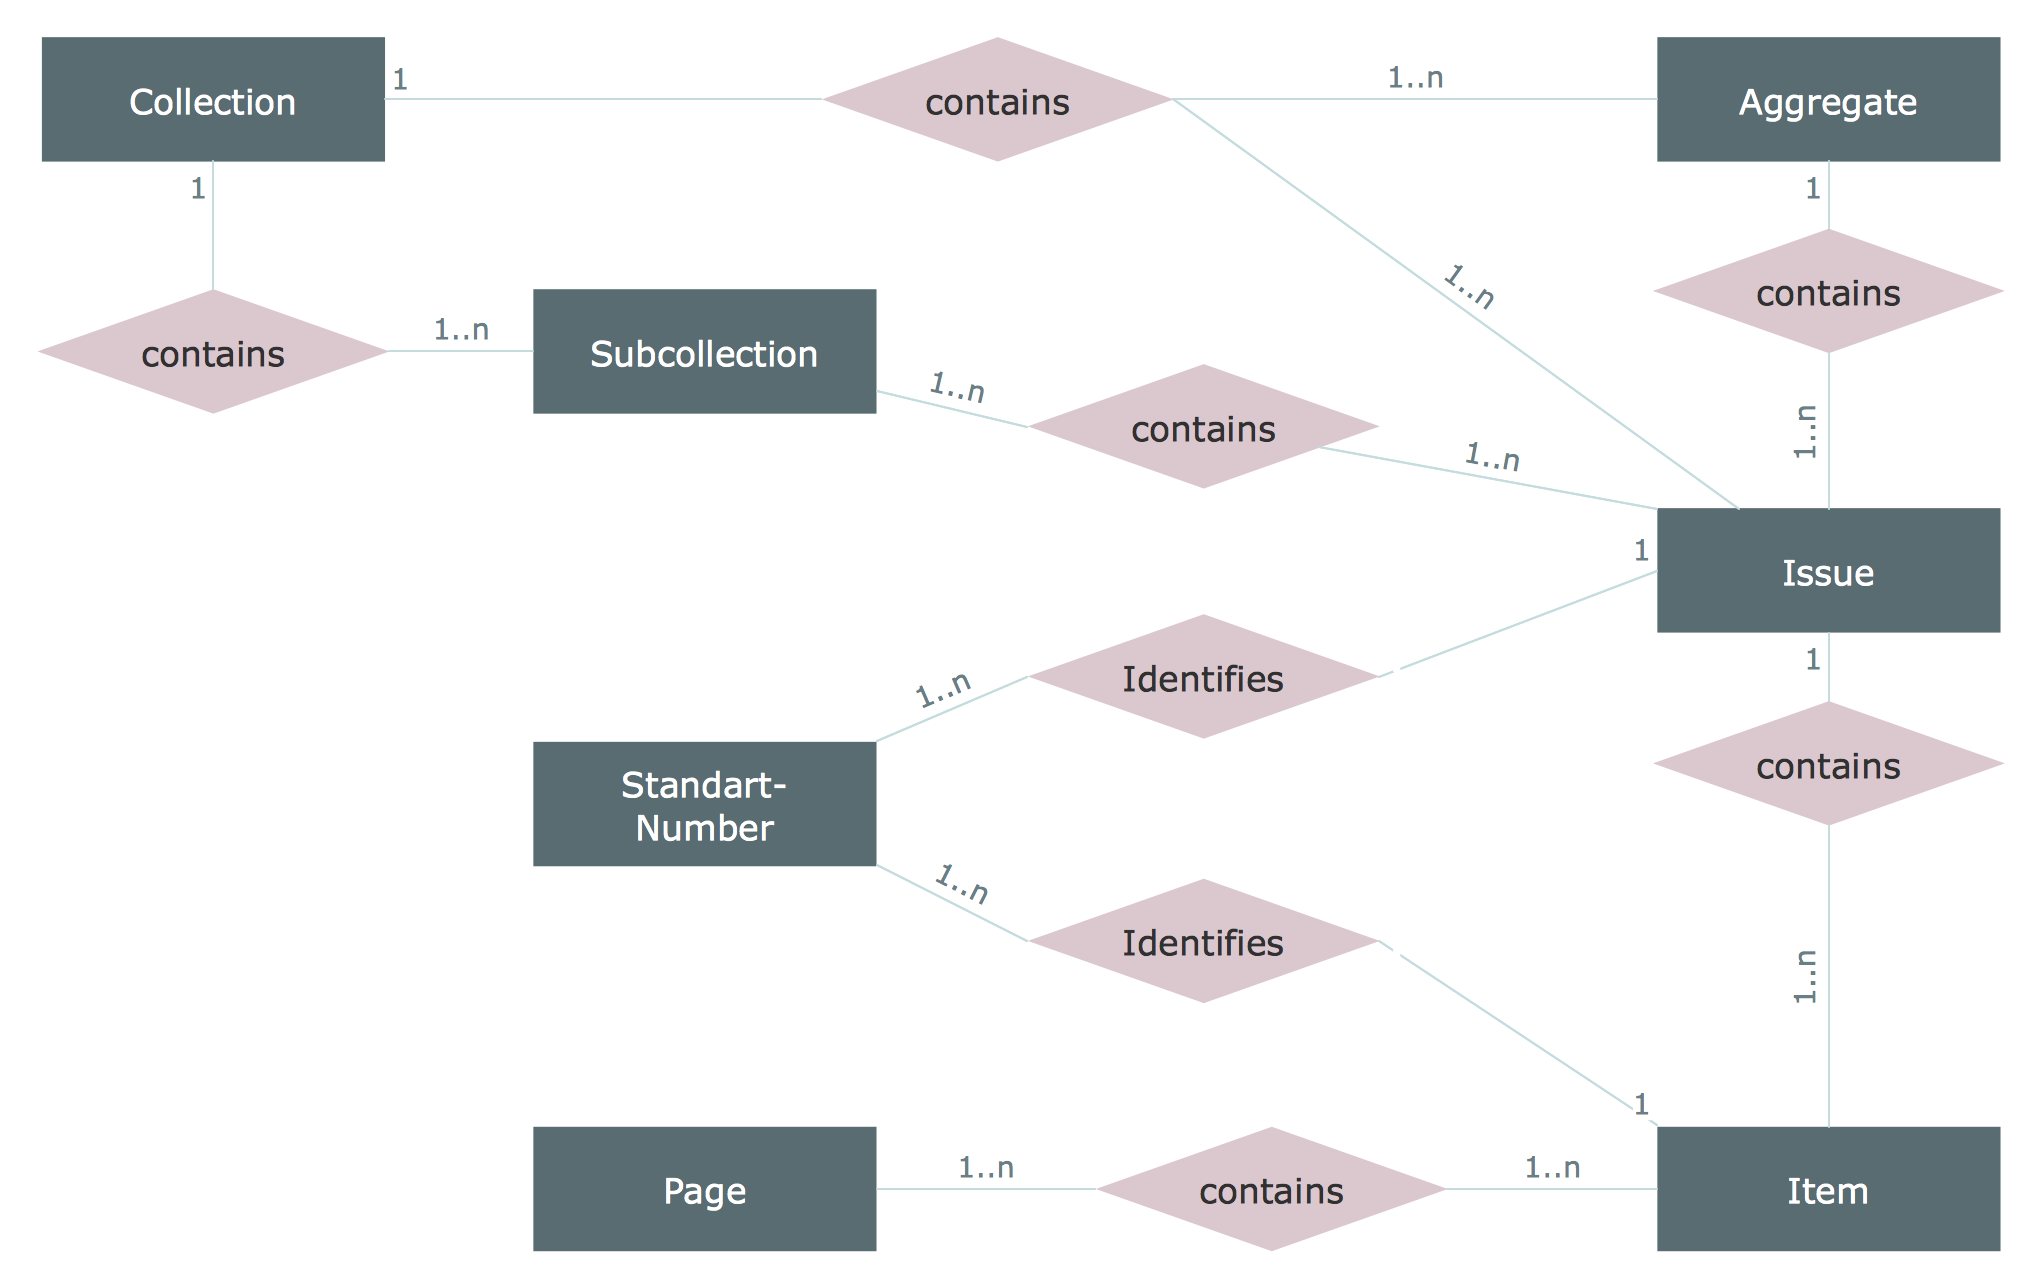 entity relationship diagram  erd  solution   conceptdraw comelectronic facsimile collections erd